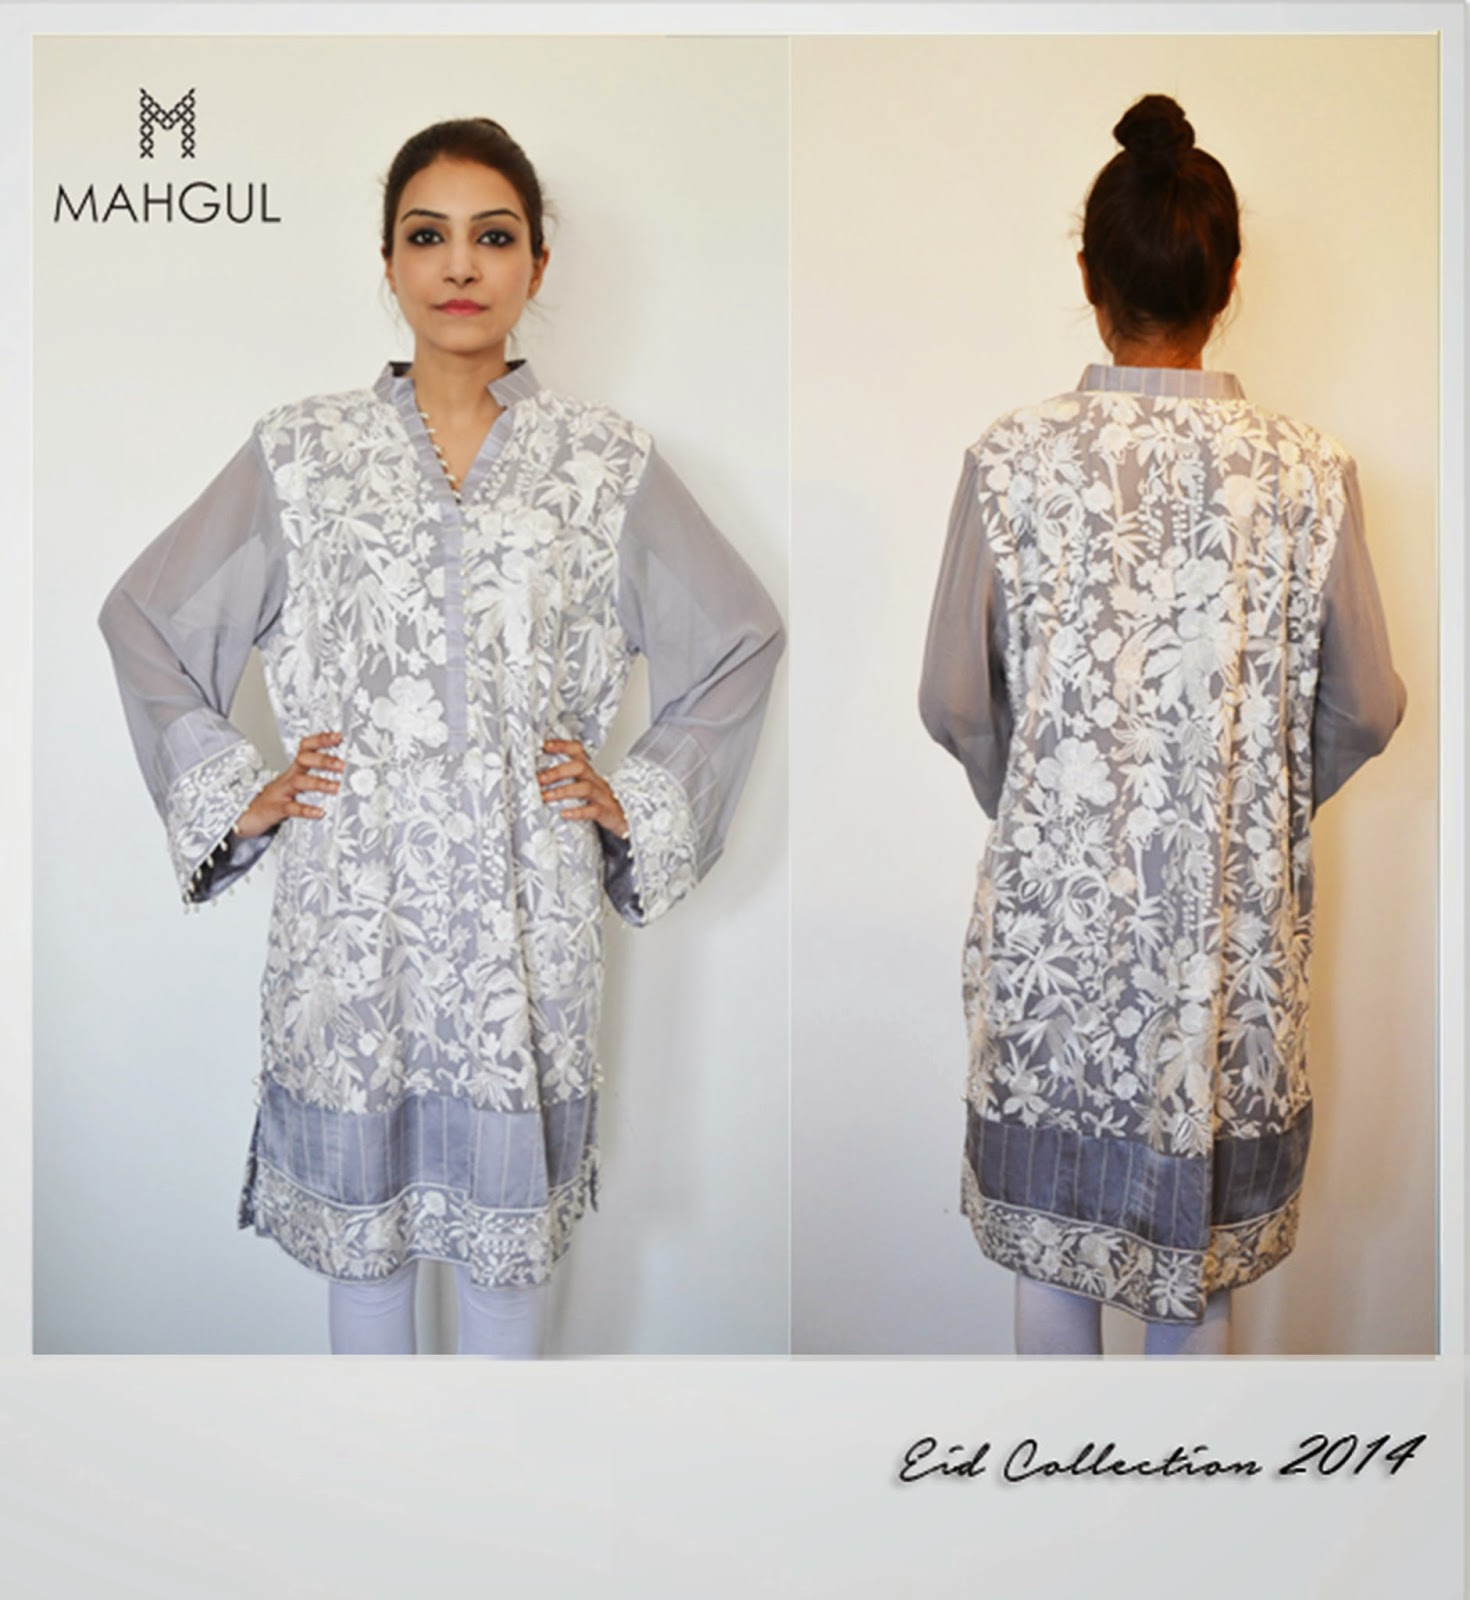 Mahgul - Eid fashion 2014